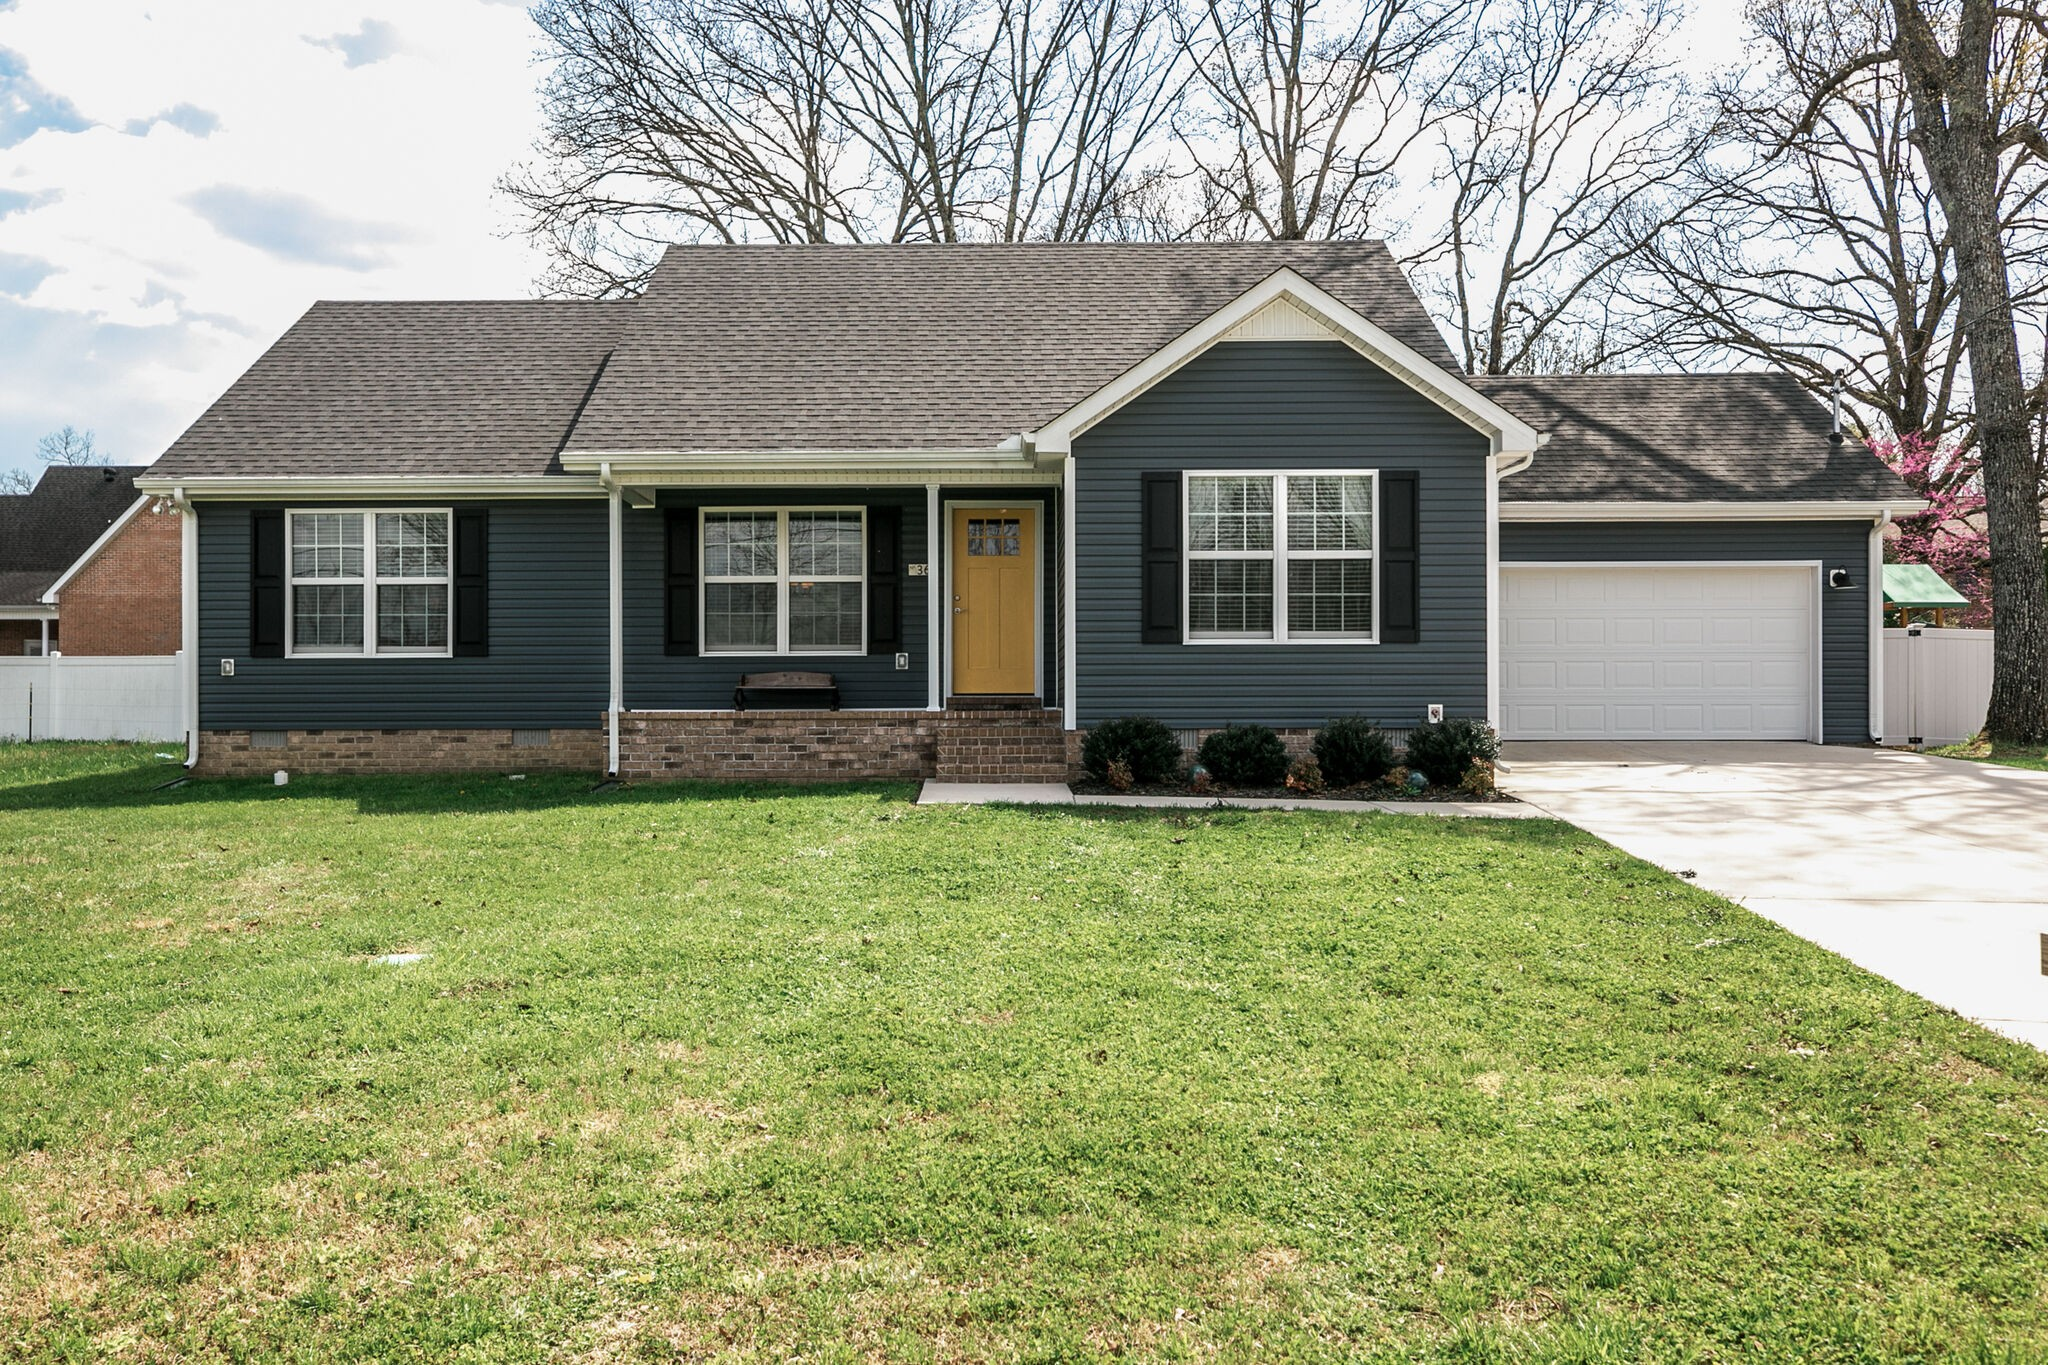 369 Amelia Dr Property Photo - Manchester, TN real estate listing